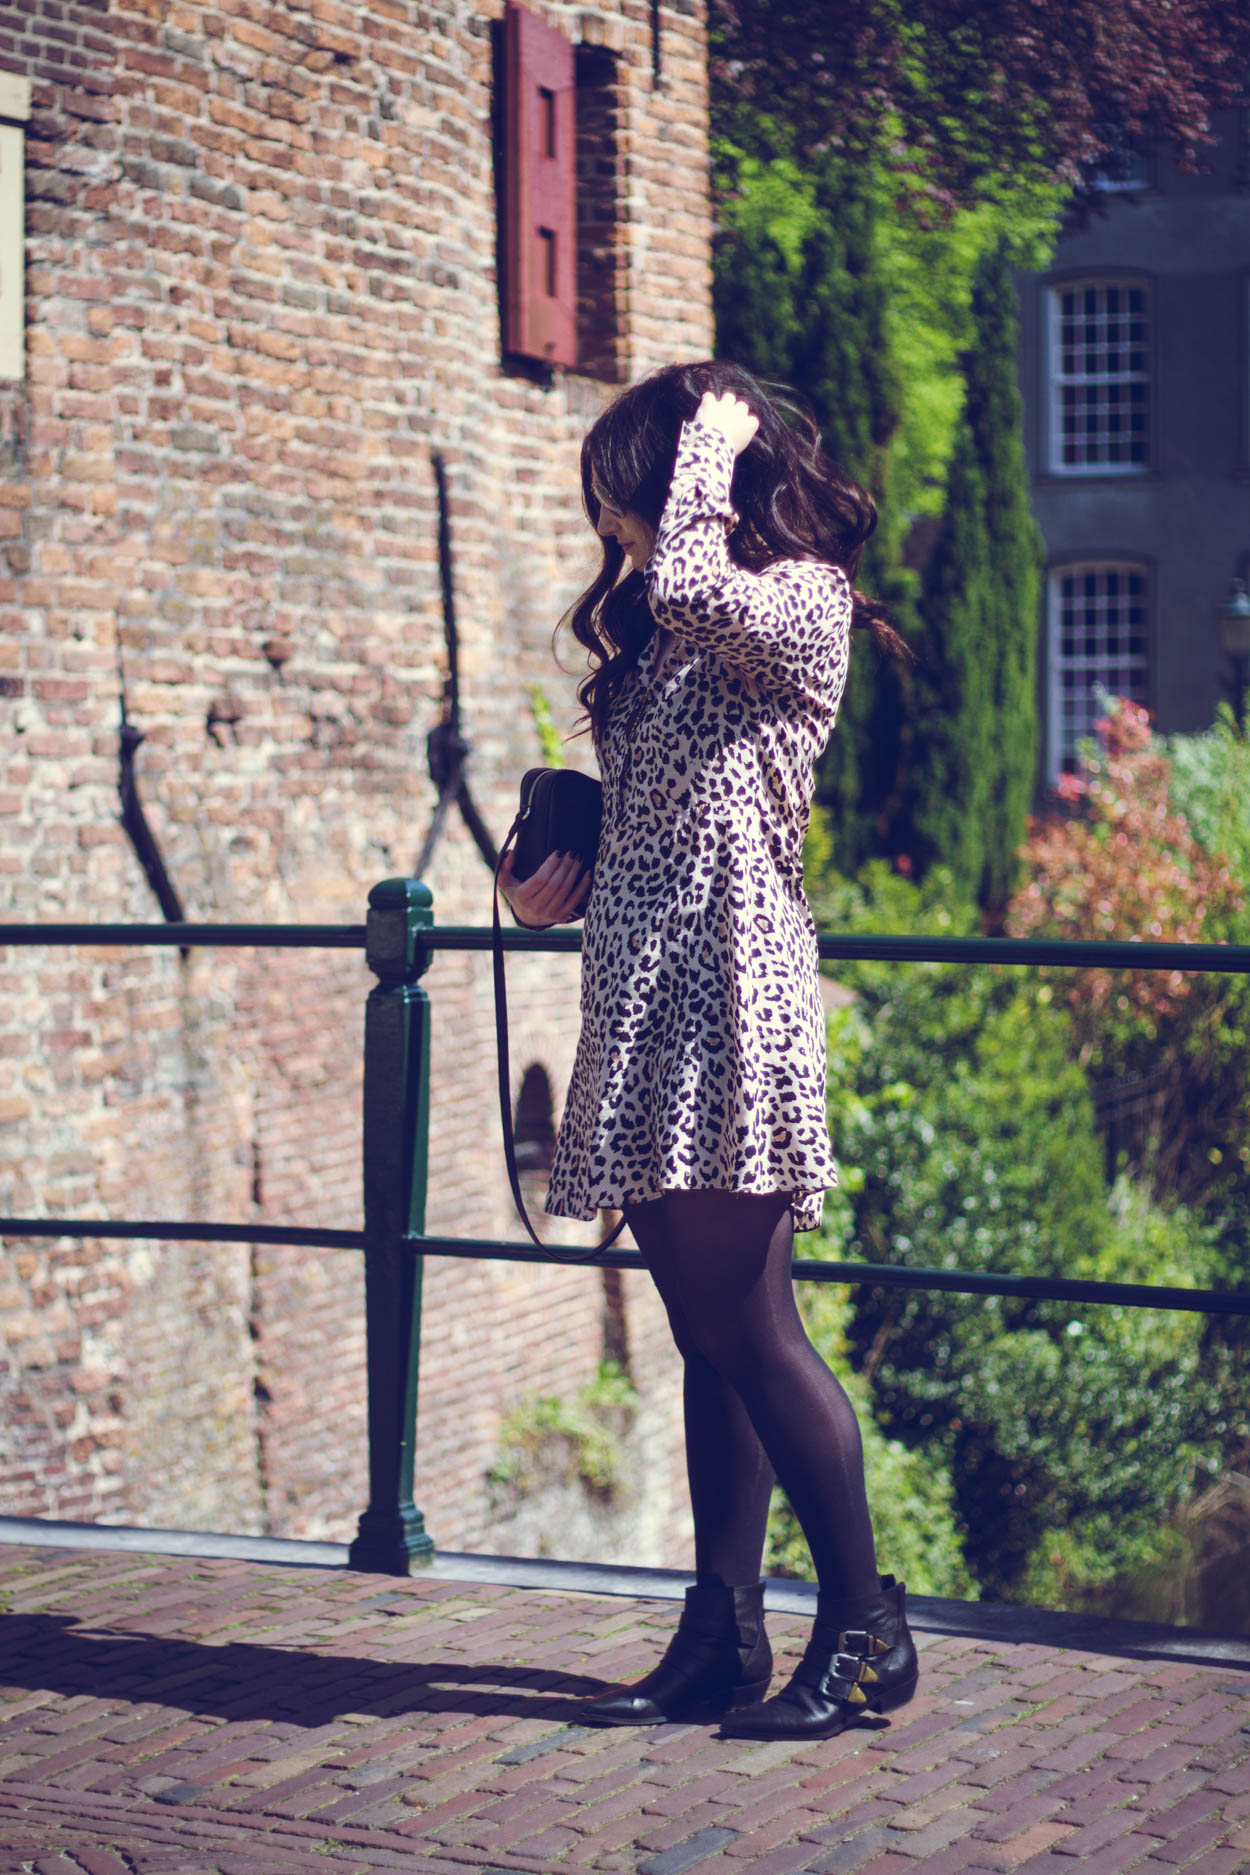 4 WORK WARDROBE OUTFITS   THECHICITALIAN   The printed dress is a fool proof professional outfit item